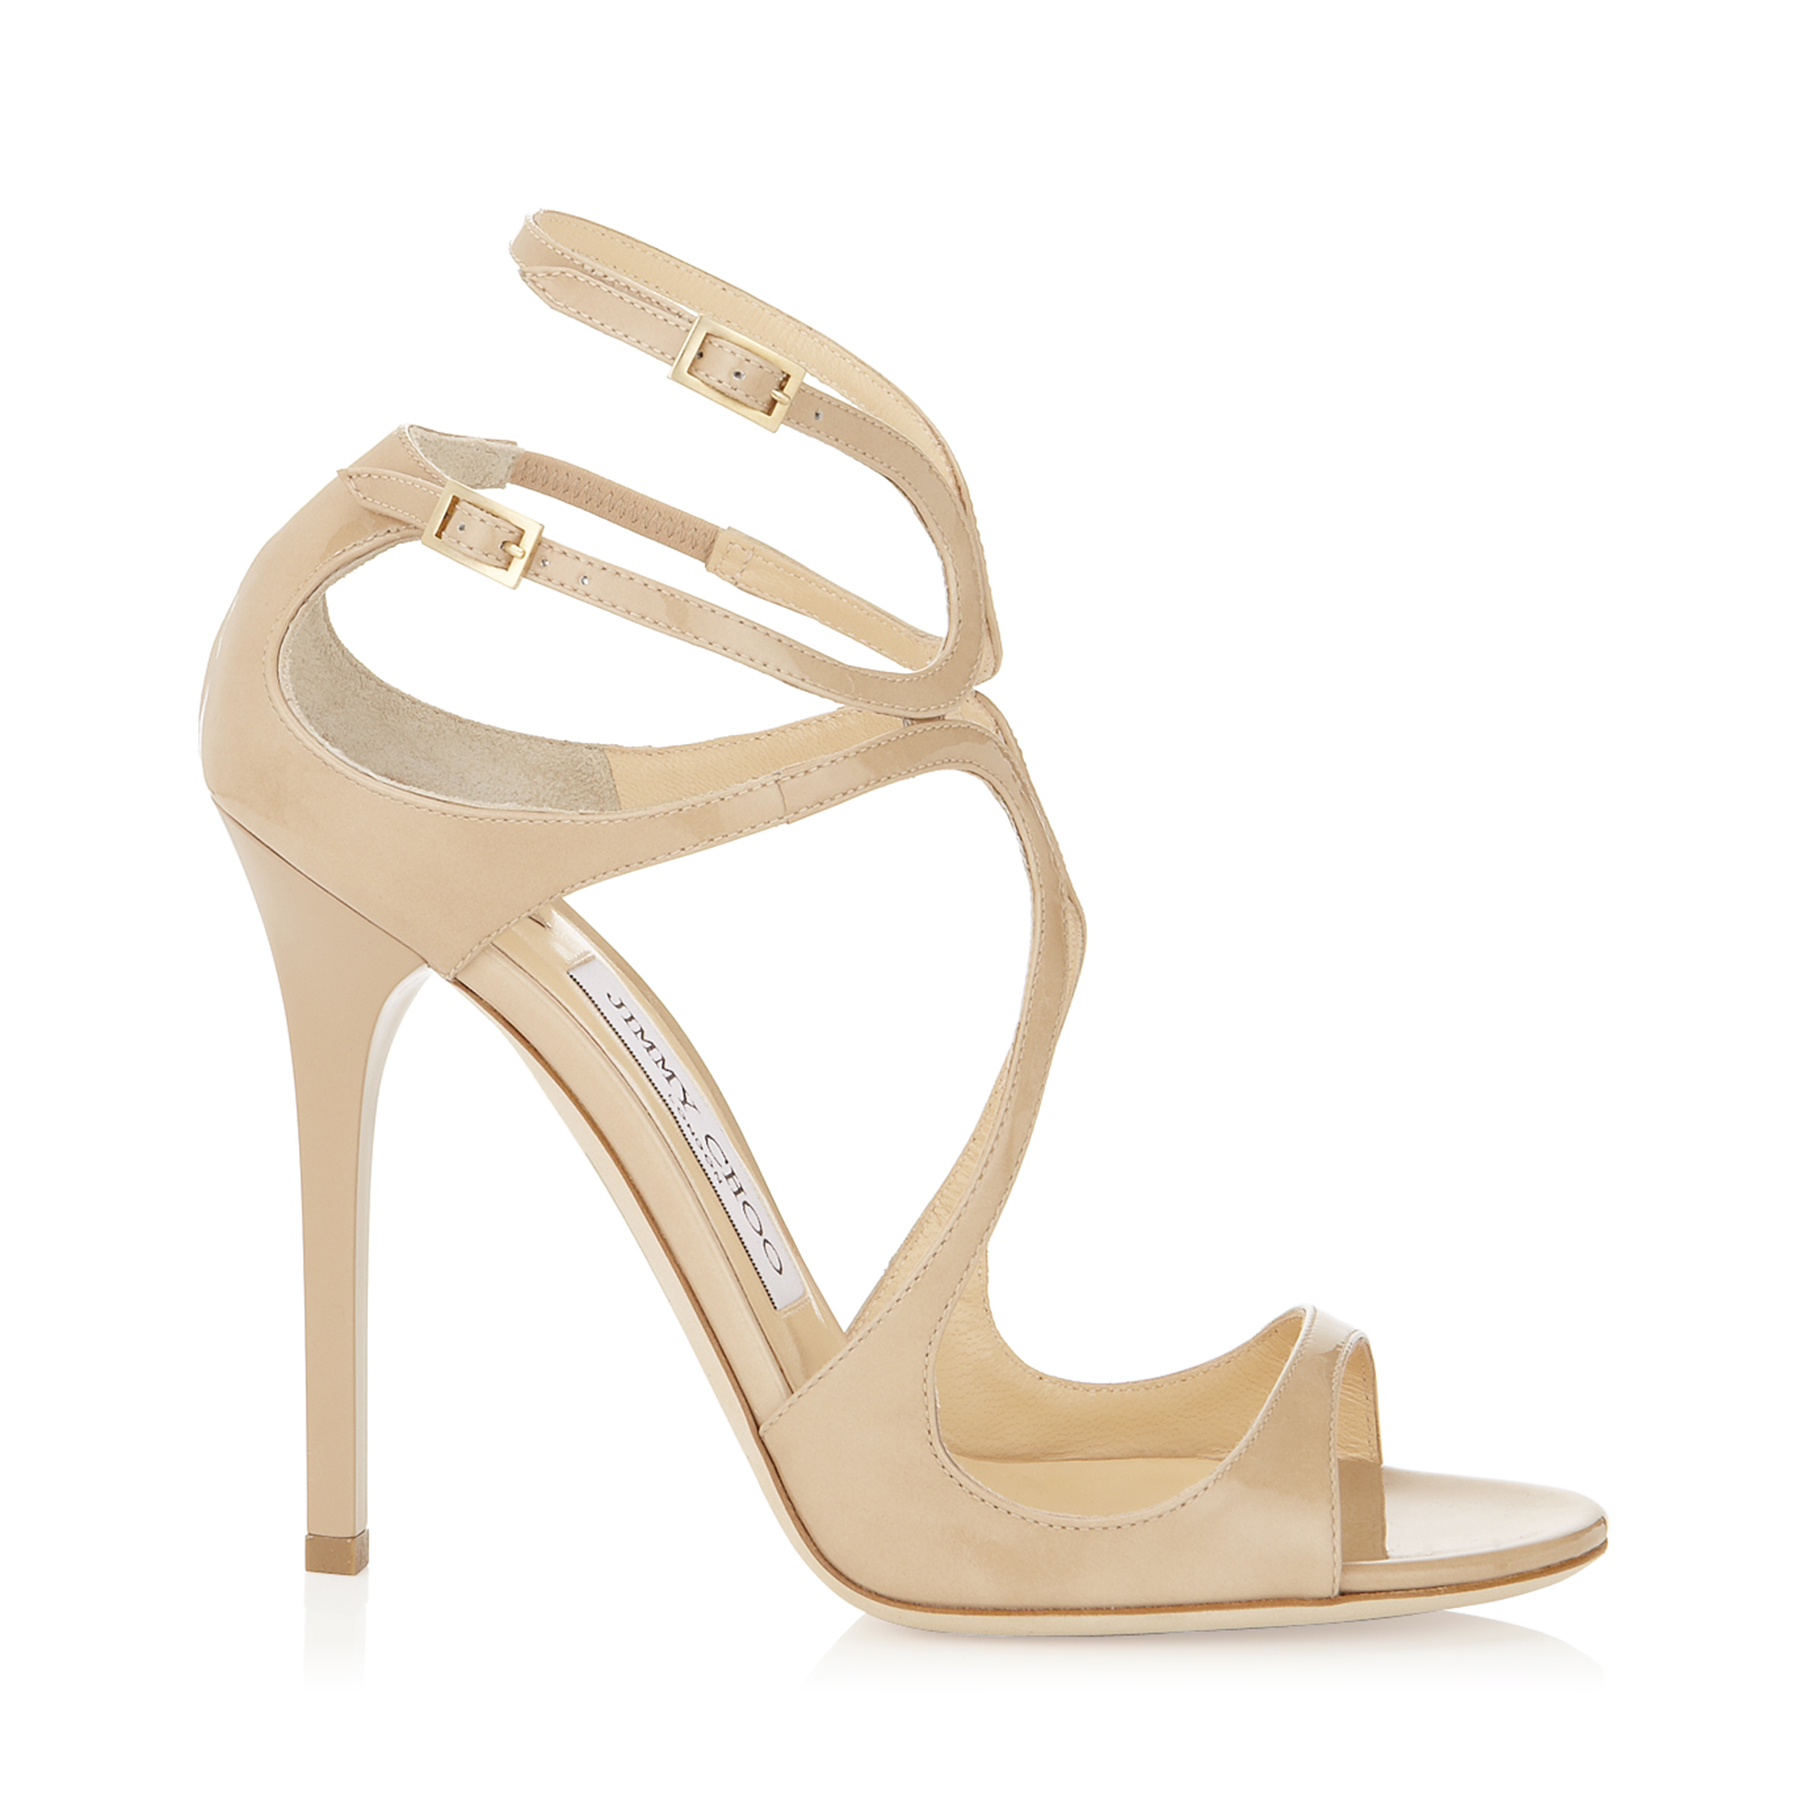 LANCE Nude Patent Leather Sandals by Jimmy Choo